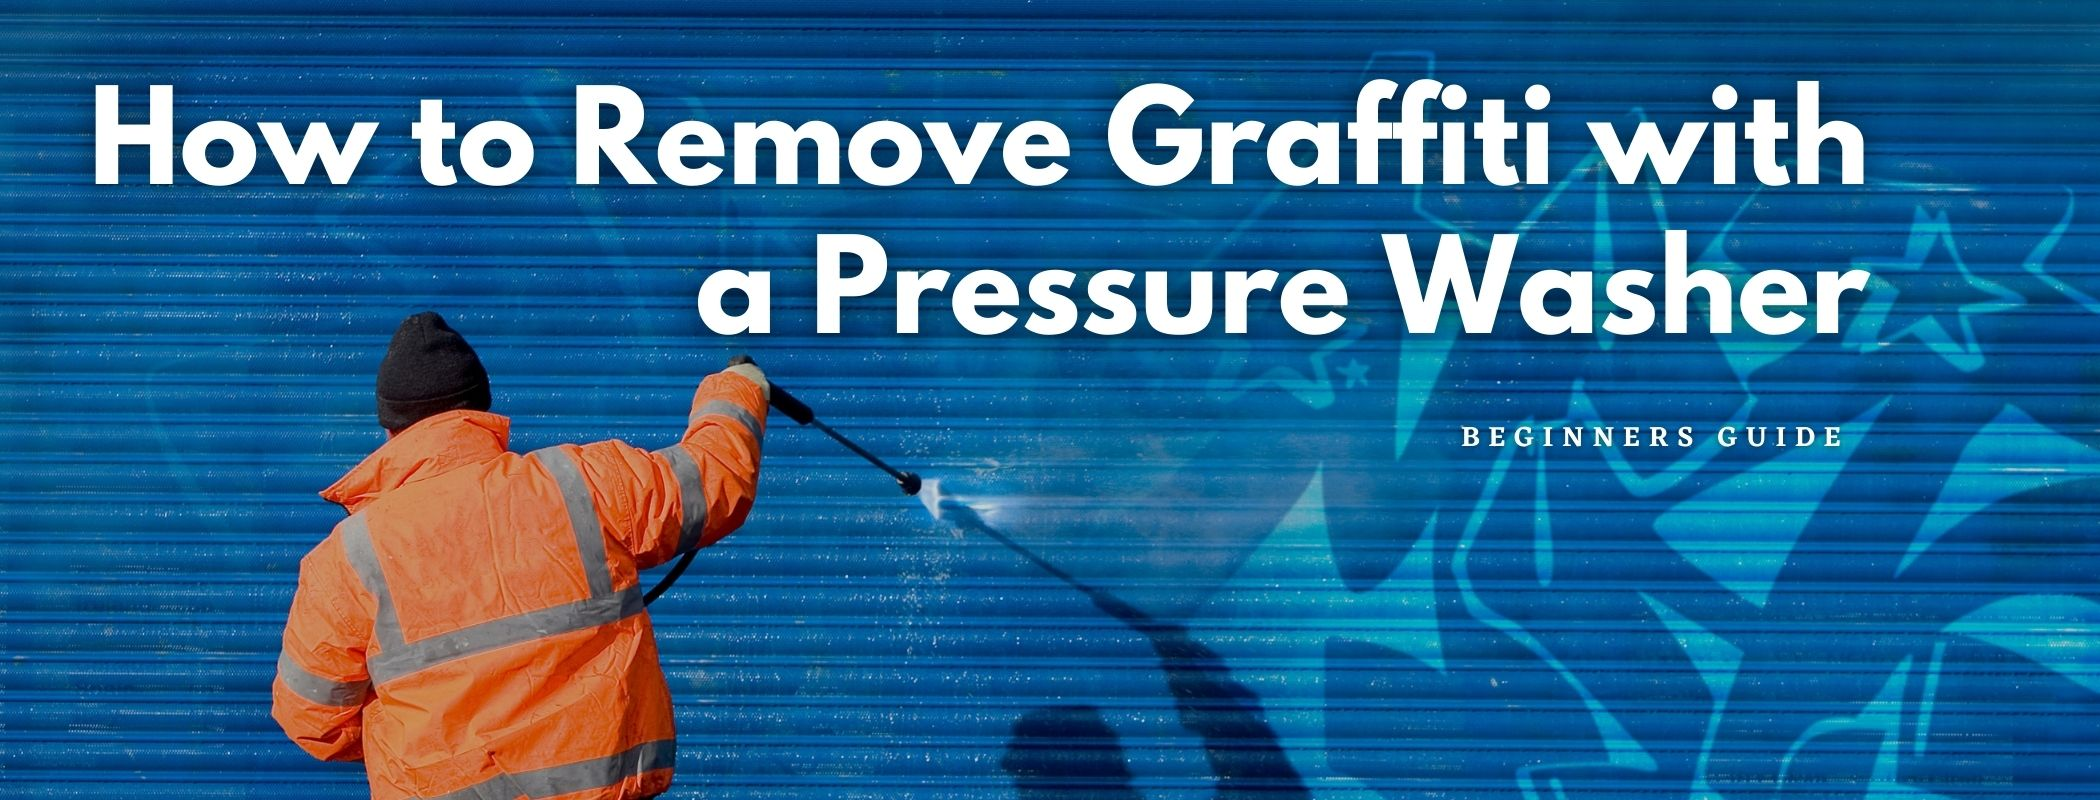 How to Remove Graffiti with a Pressure Washer